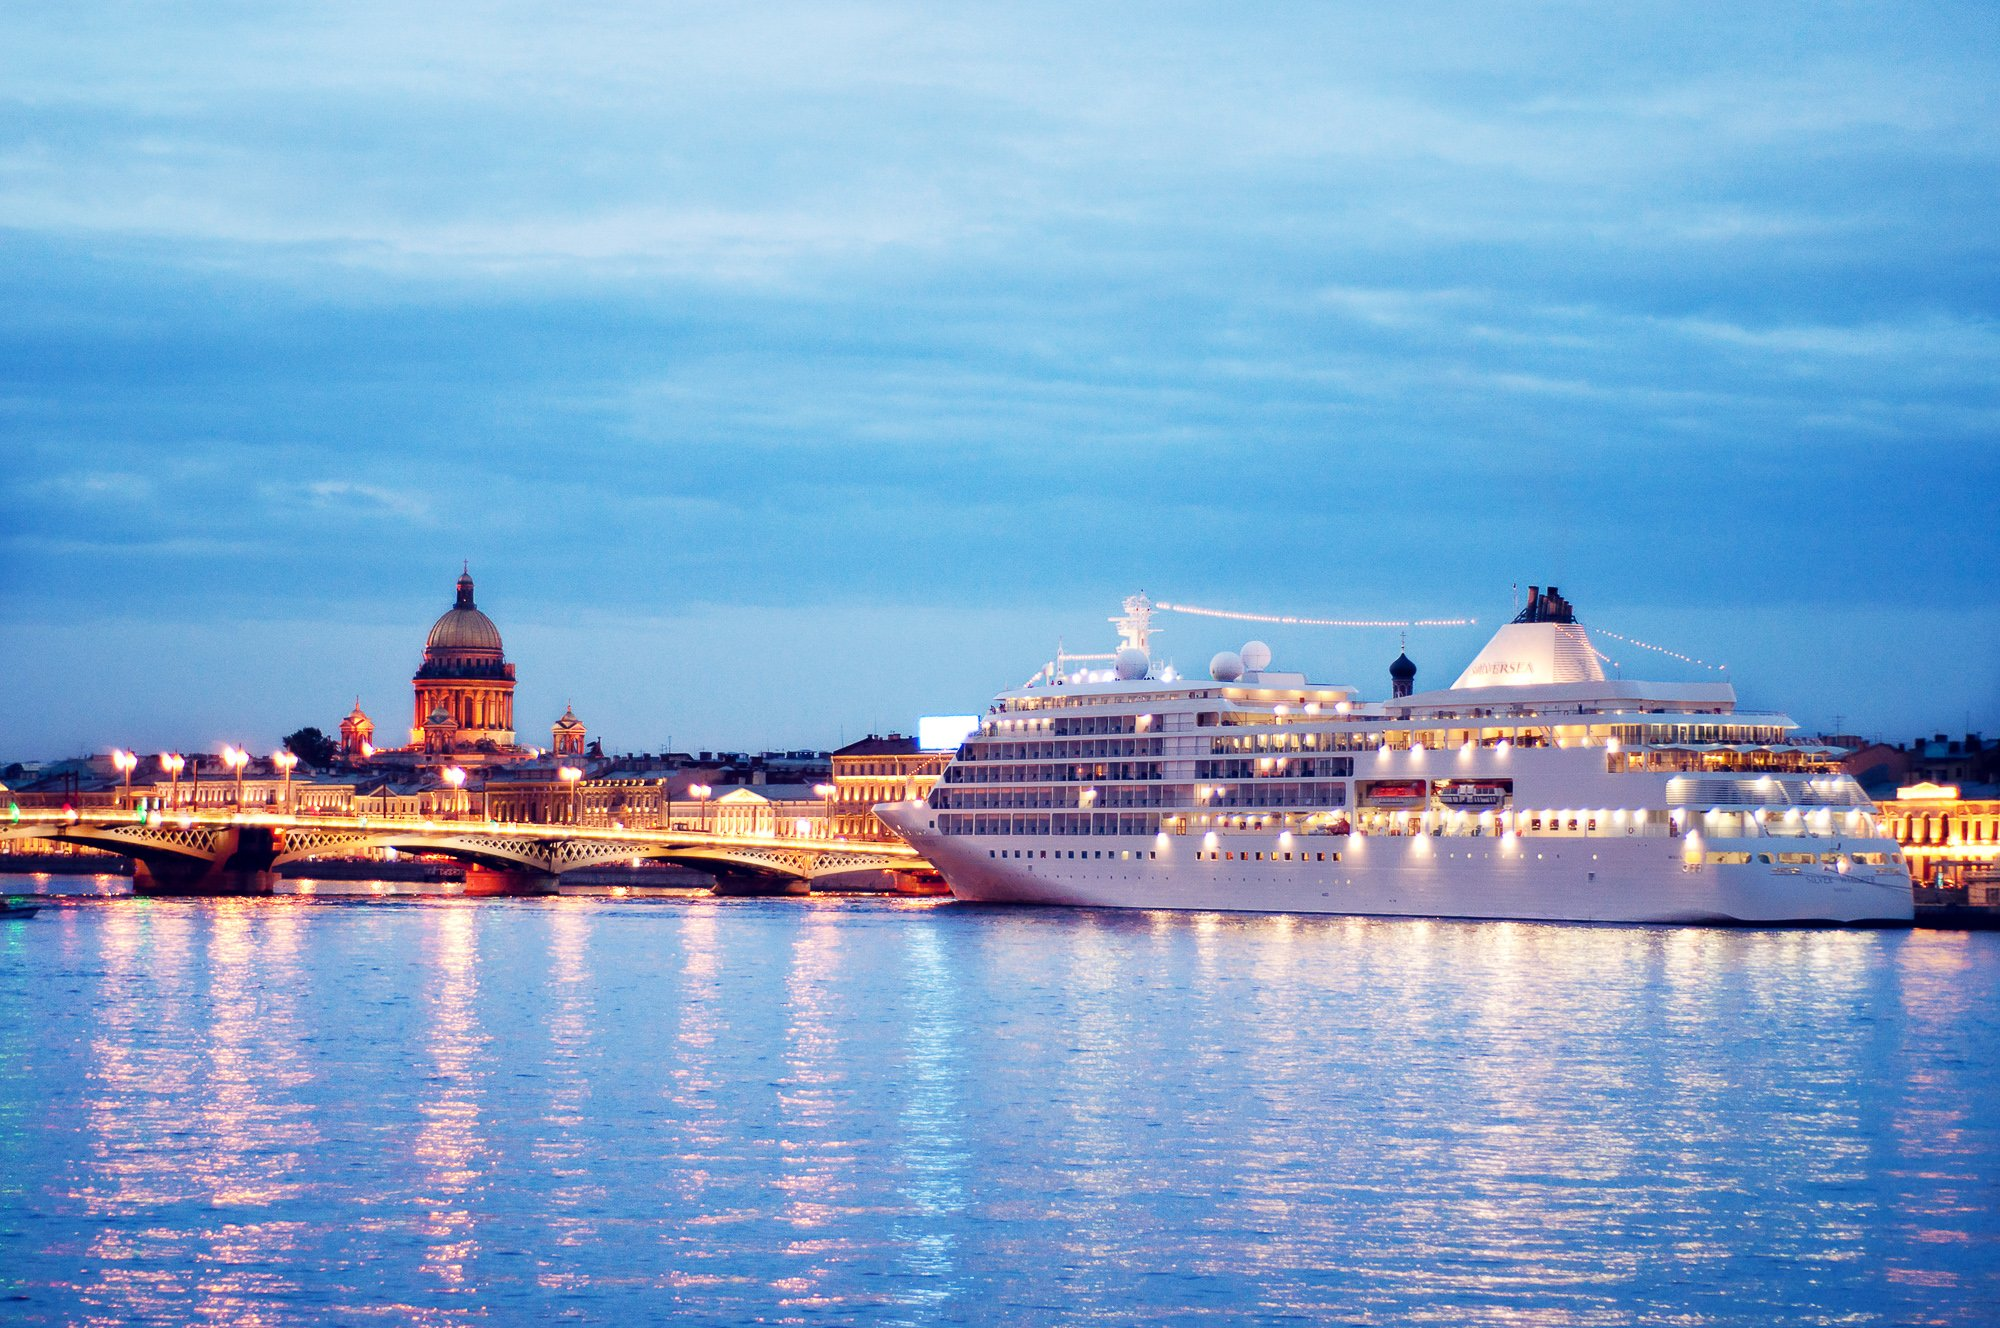 Cruise ship on Neva river in St Petersburg